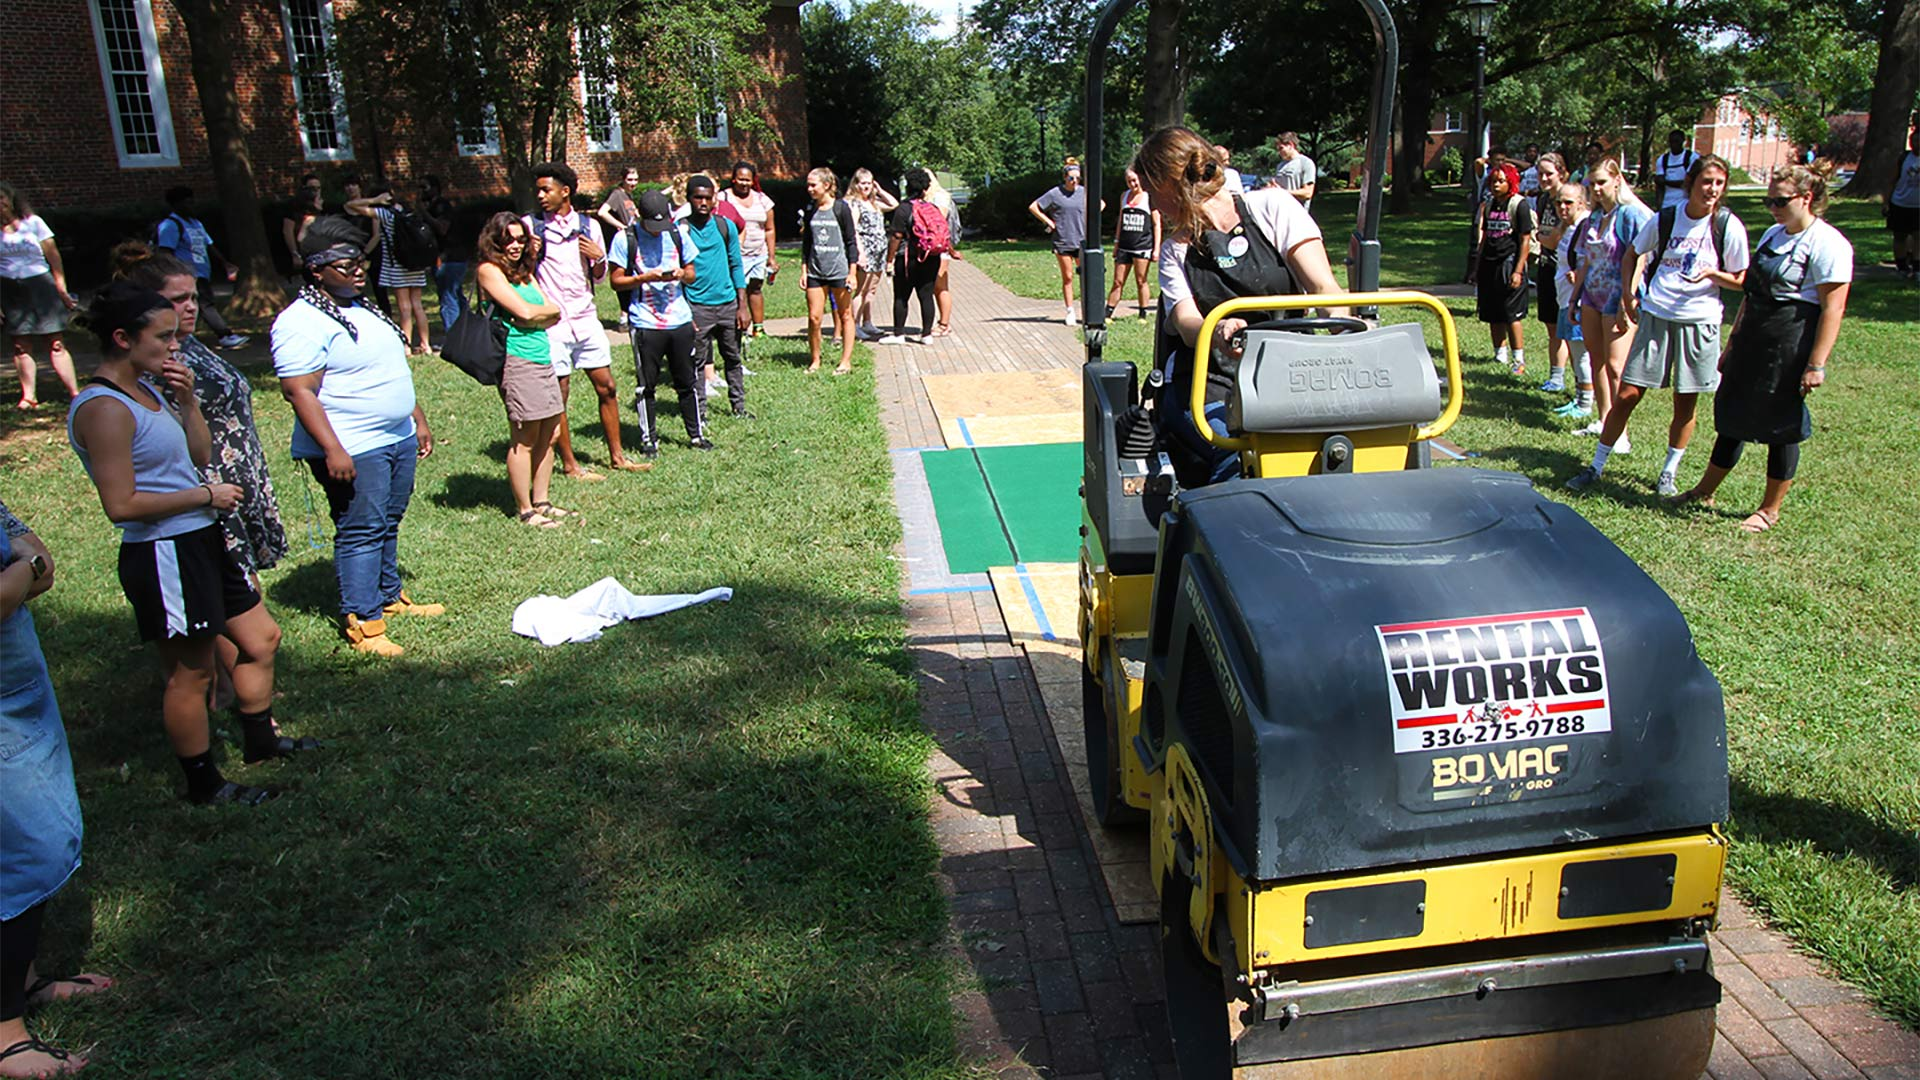 That ought to do it! Students use a steam roller to create art prints during Arts on the Quad.